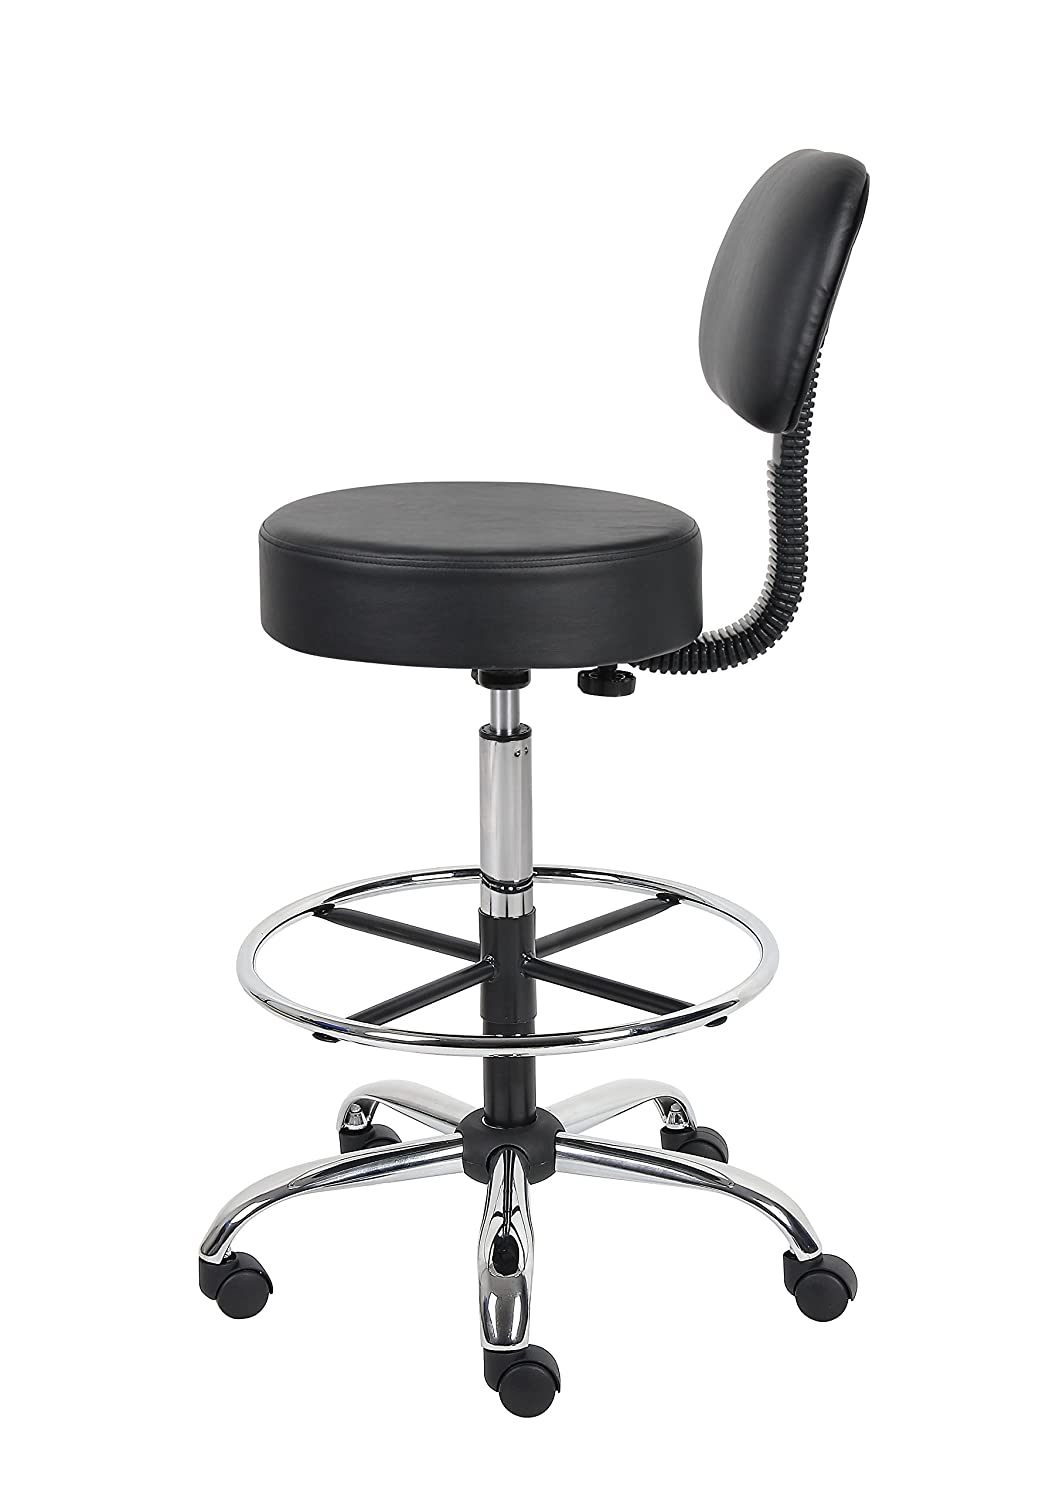 amazoncom boss office products bbk be well medical spa  - amazoncom boss office products bbk be well medical spa draftingstool with back black kitchen  dining